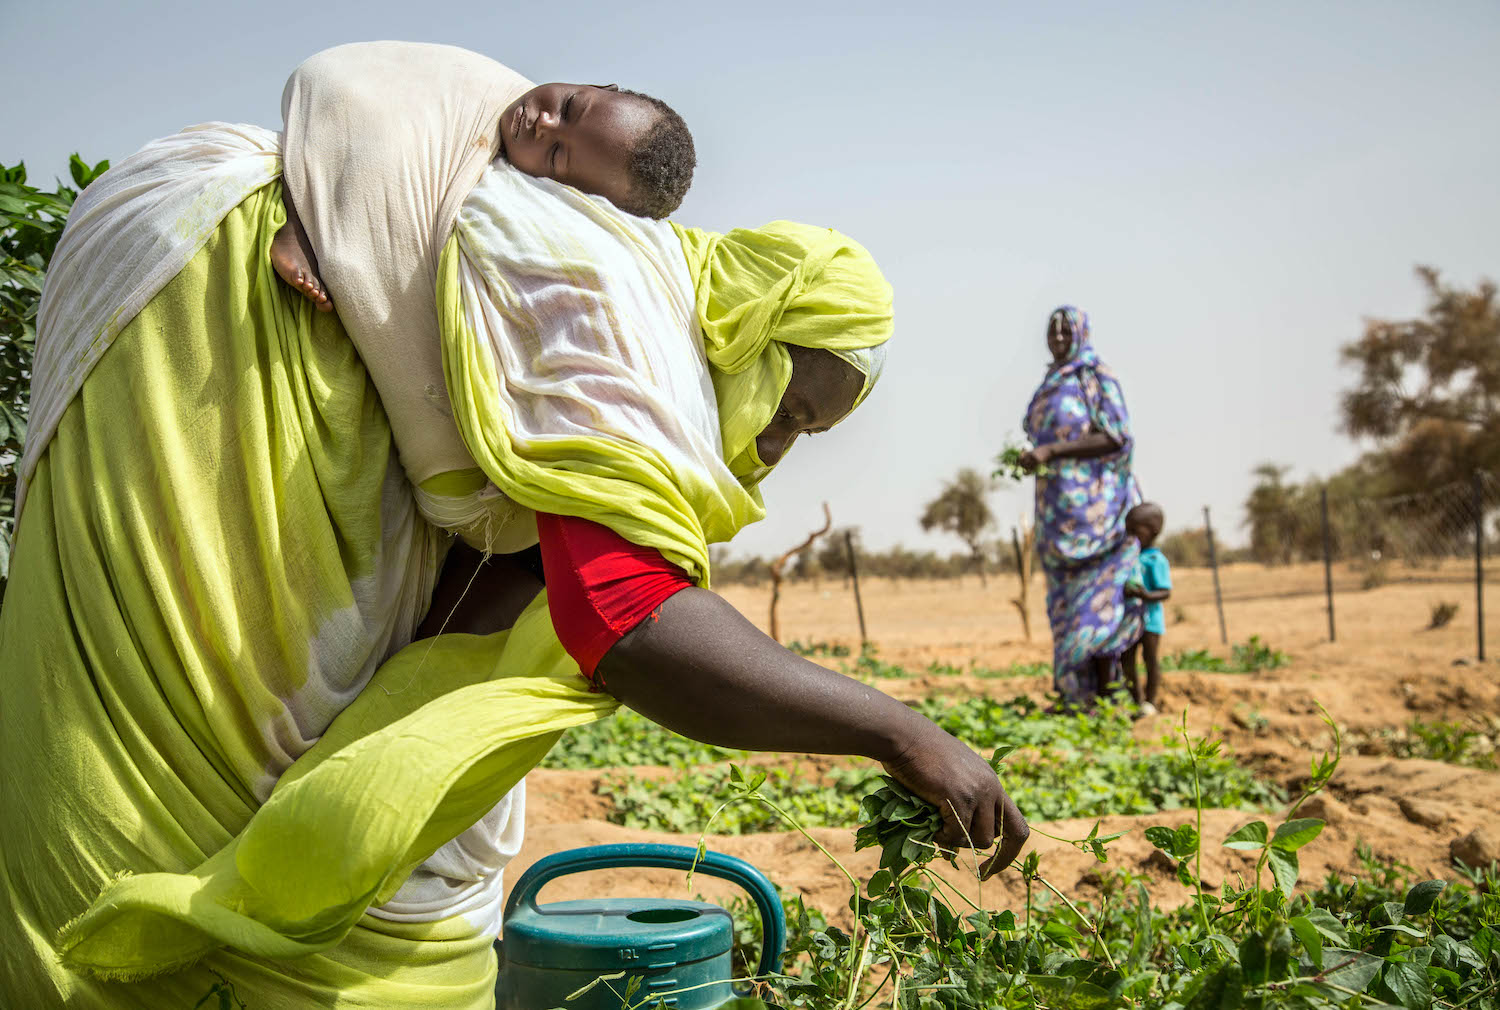 A woman works with her child on her back in a vegetable patch in Tokomadji, Mauritania in July 2020.   Raphael Pouget/UNICEF